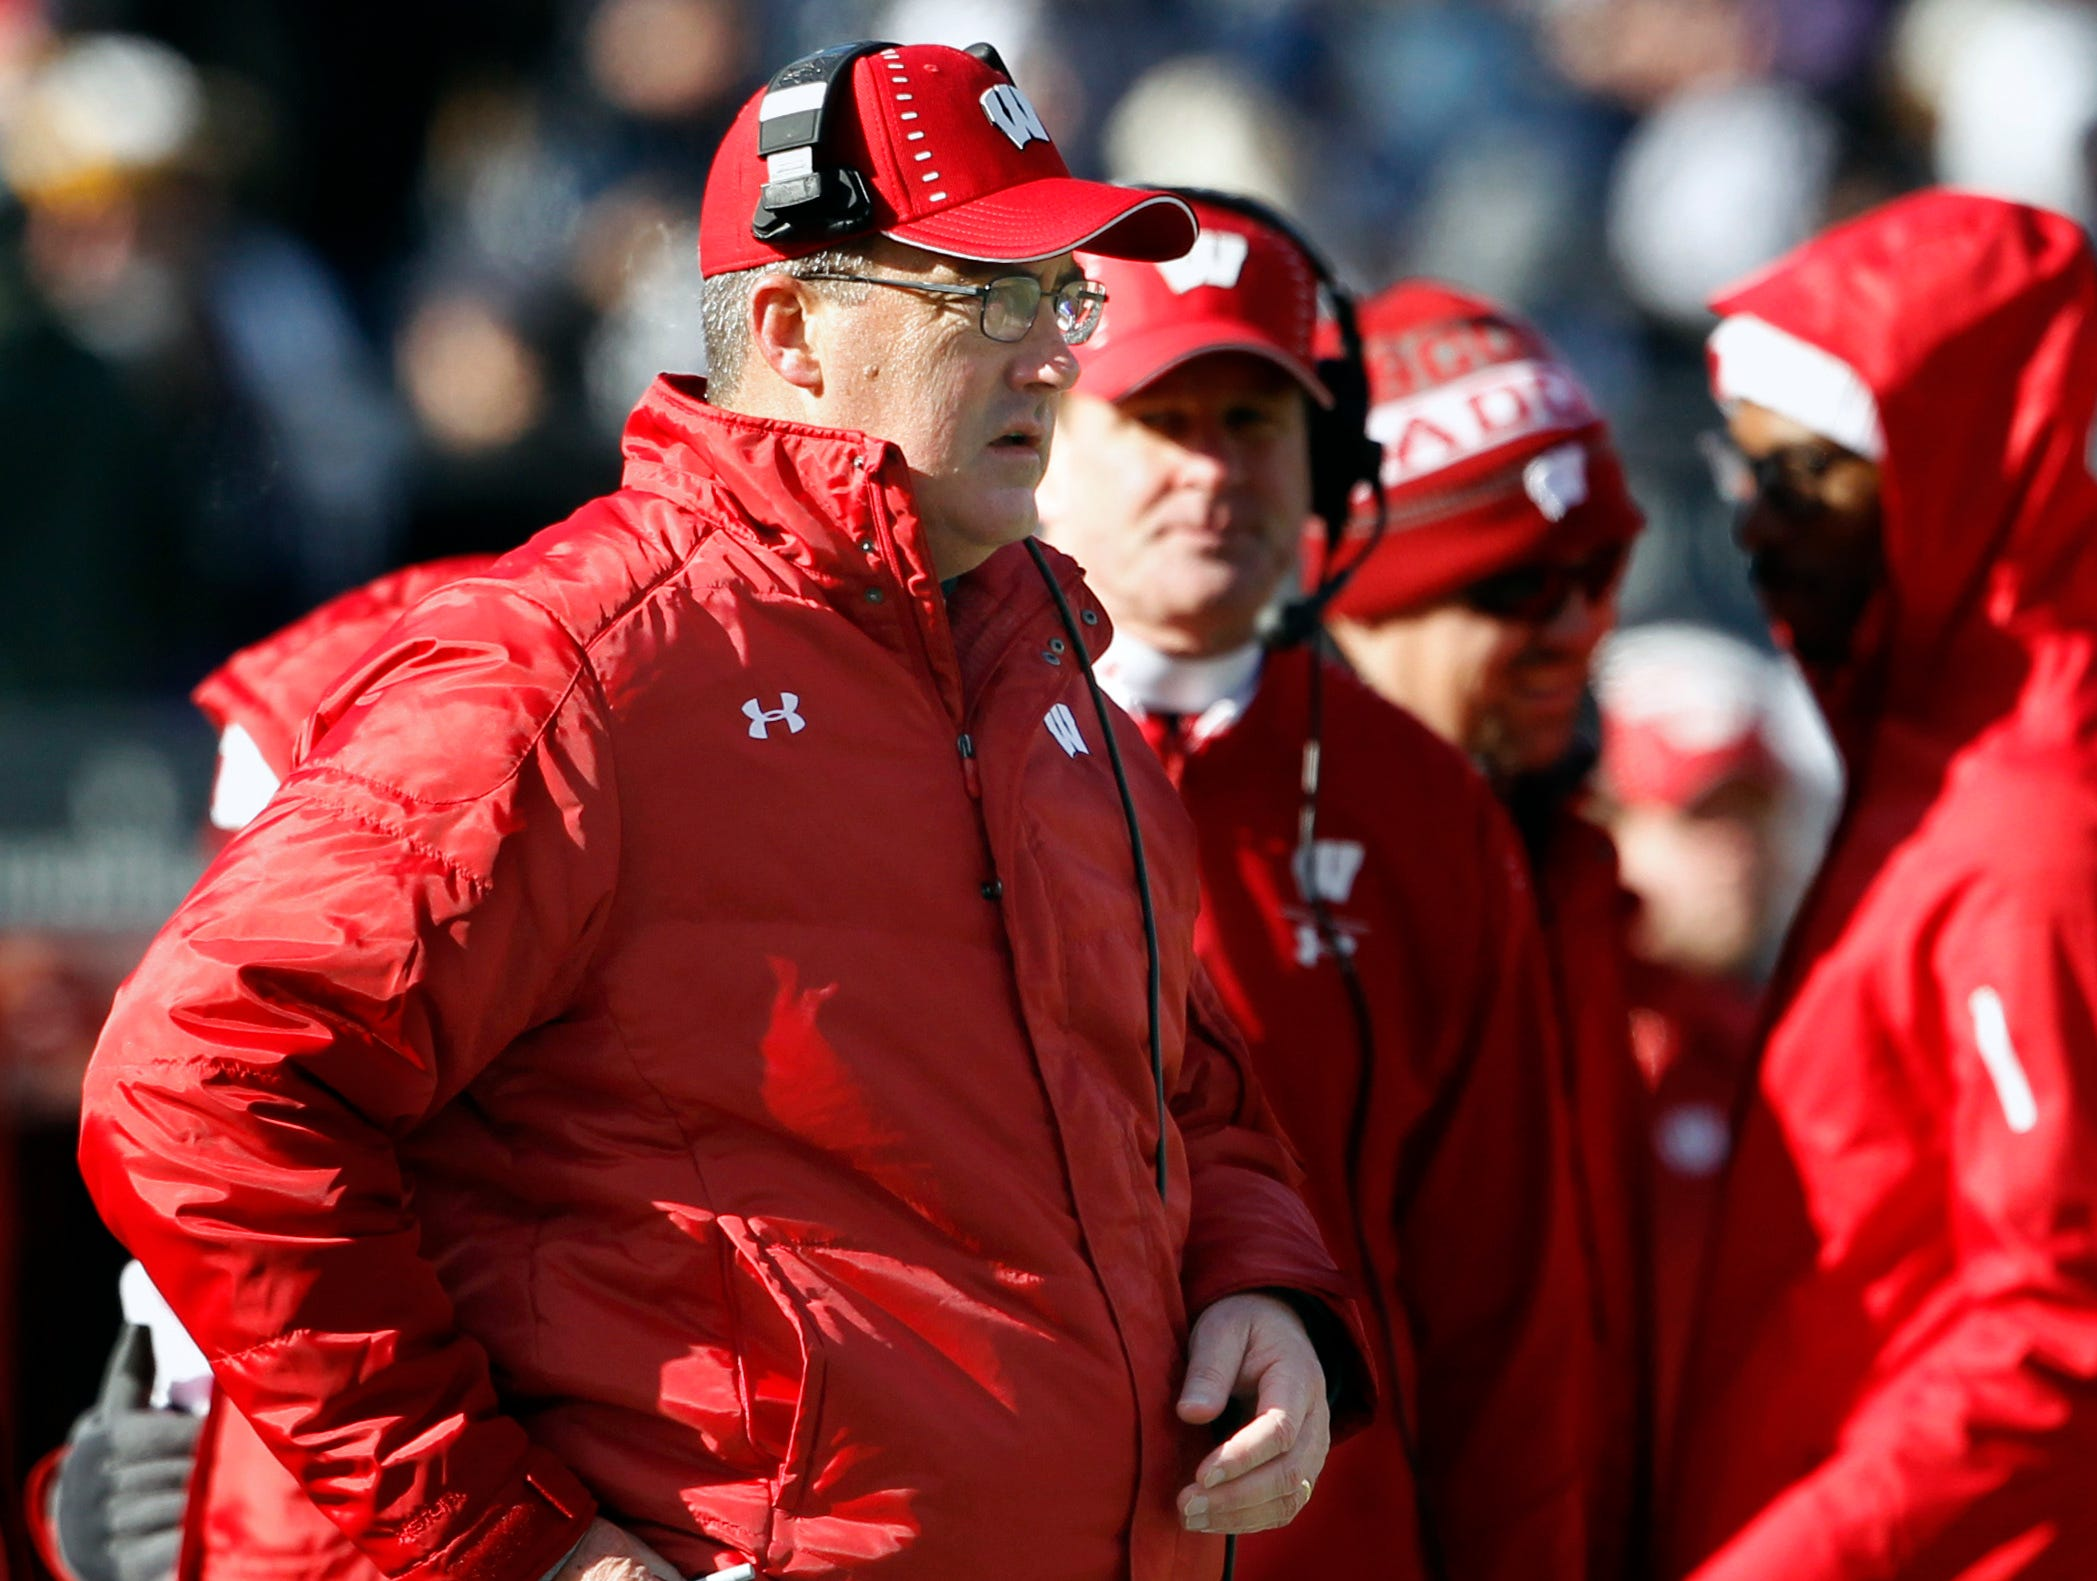 Wisconsin head coach Paul Chryst stands on the sidelines as the team takes on Penn State during the first half of an NCAA college football game in State College, Pa., Saturday, Nov. 10, 2018.